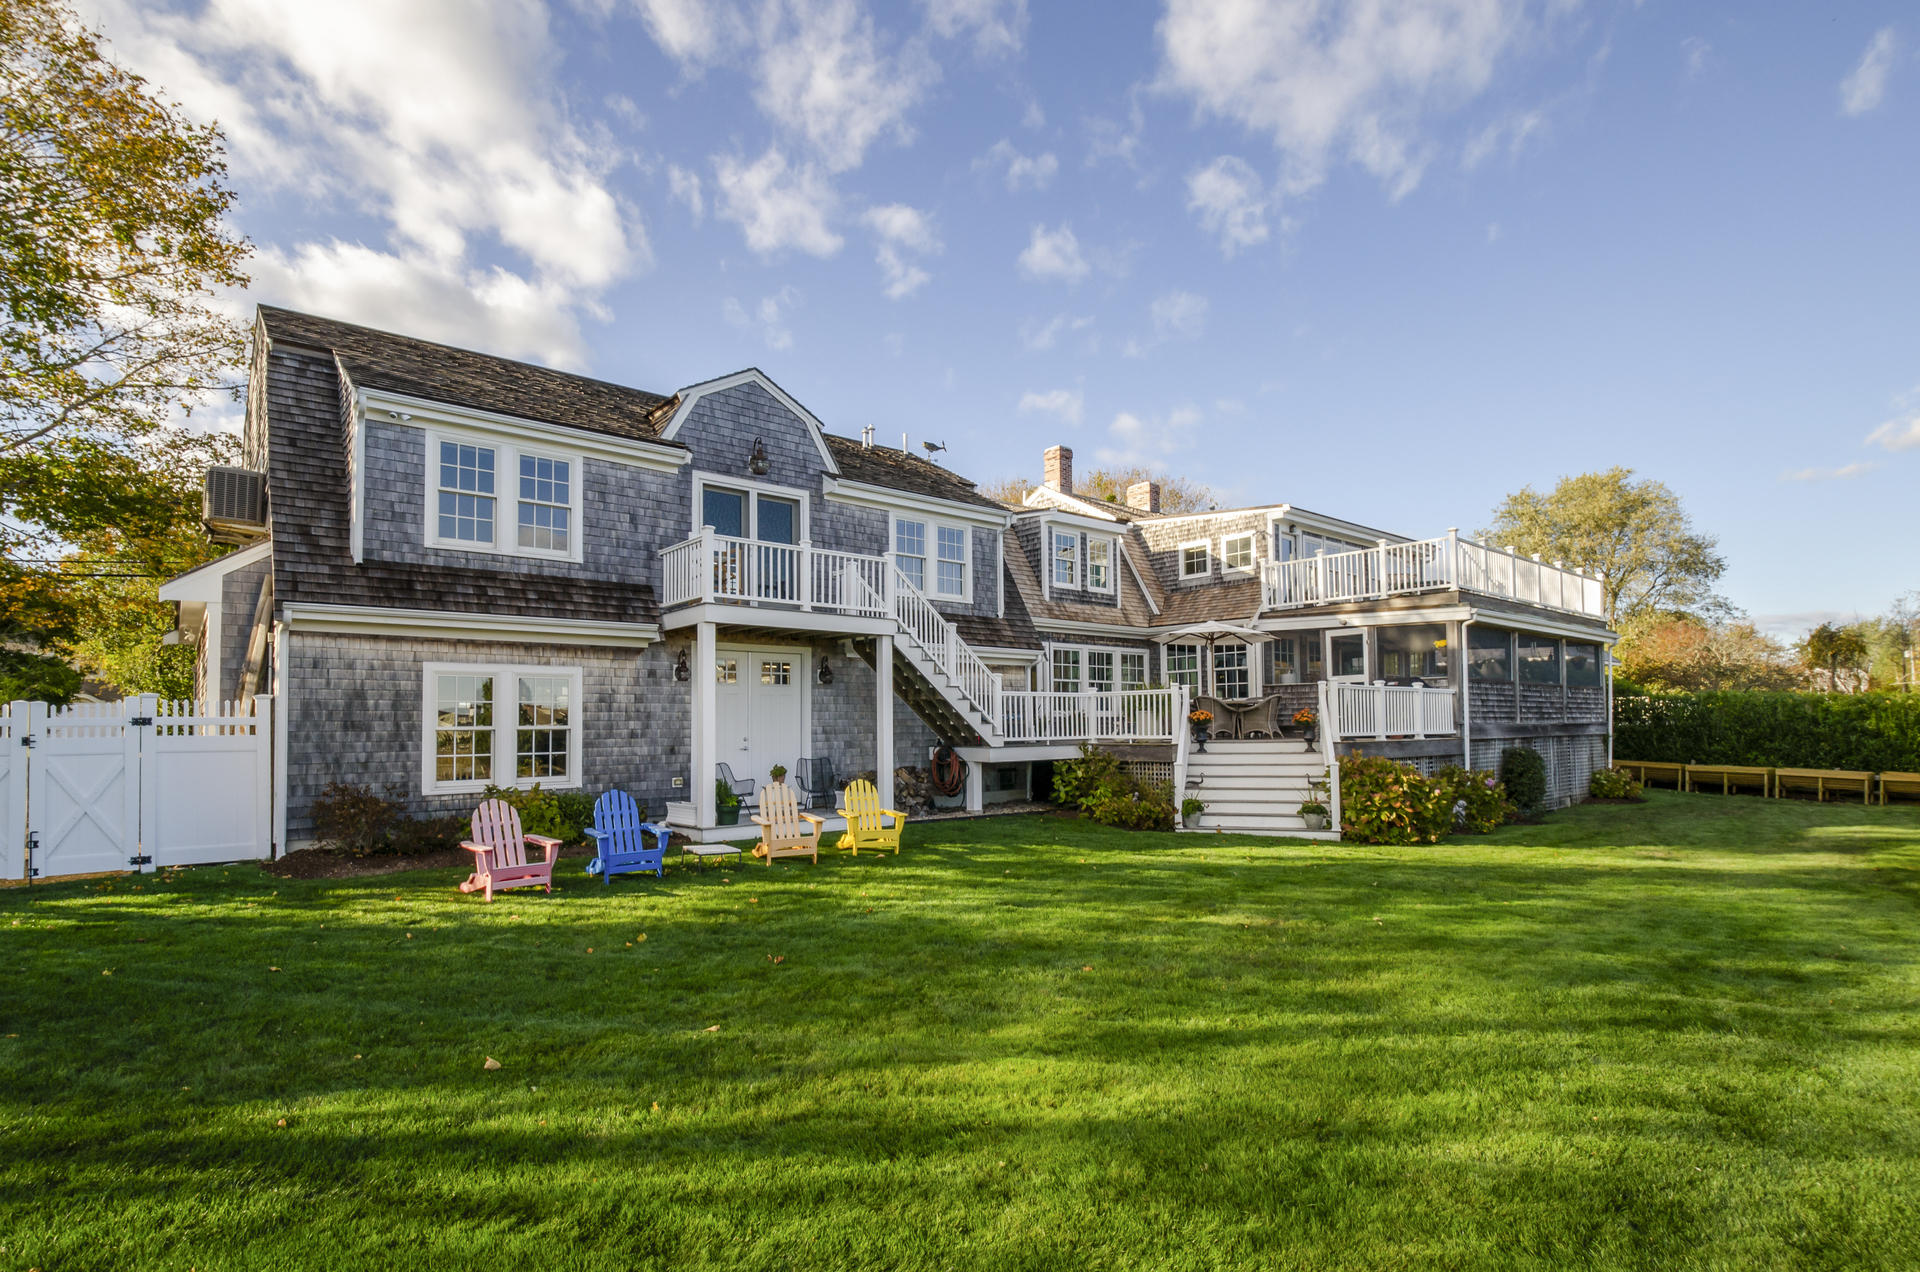 707 South Main Centerville, MA 02632